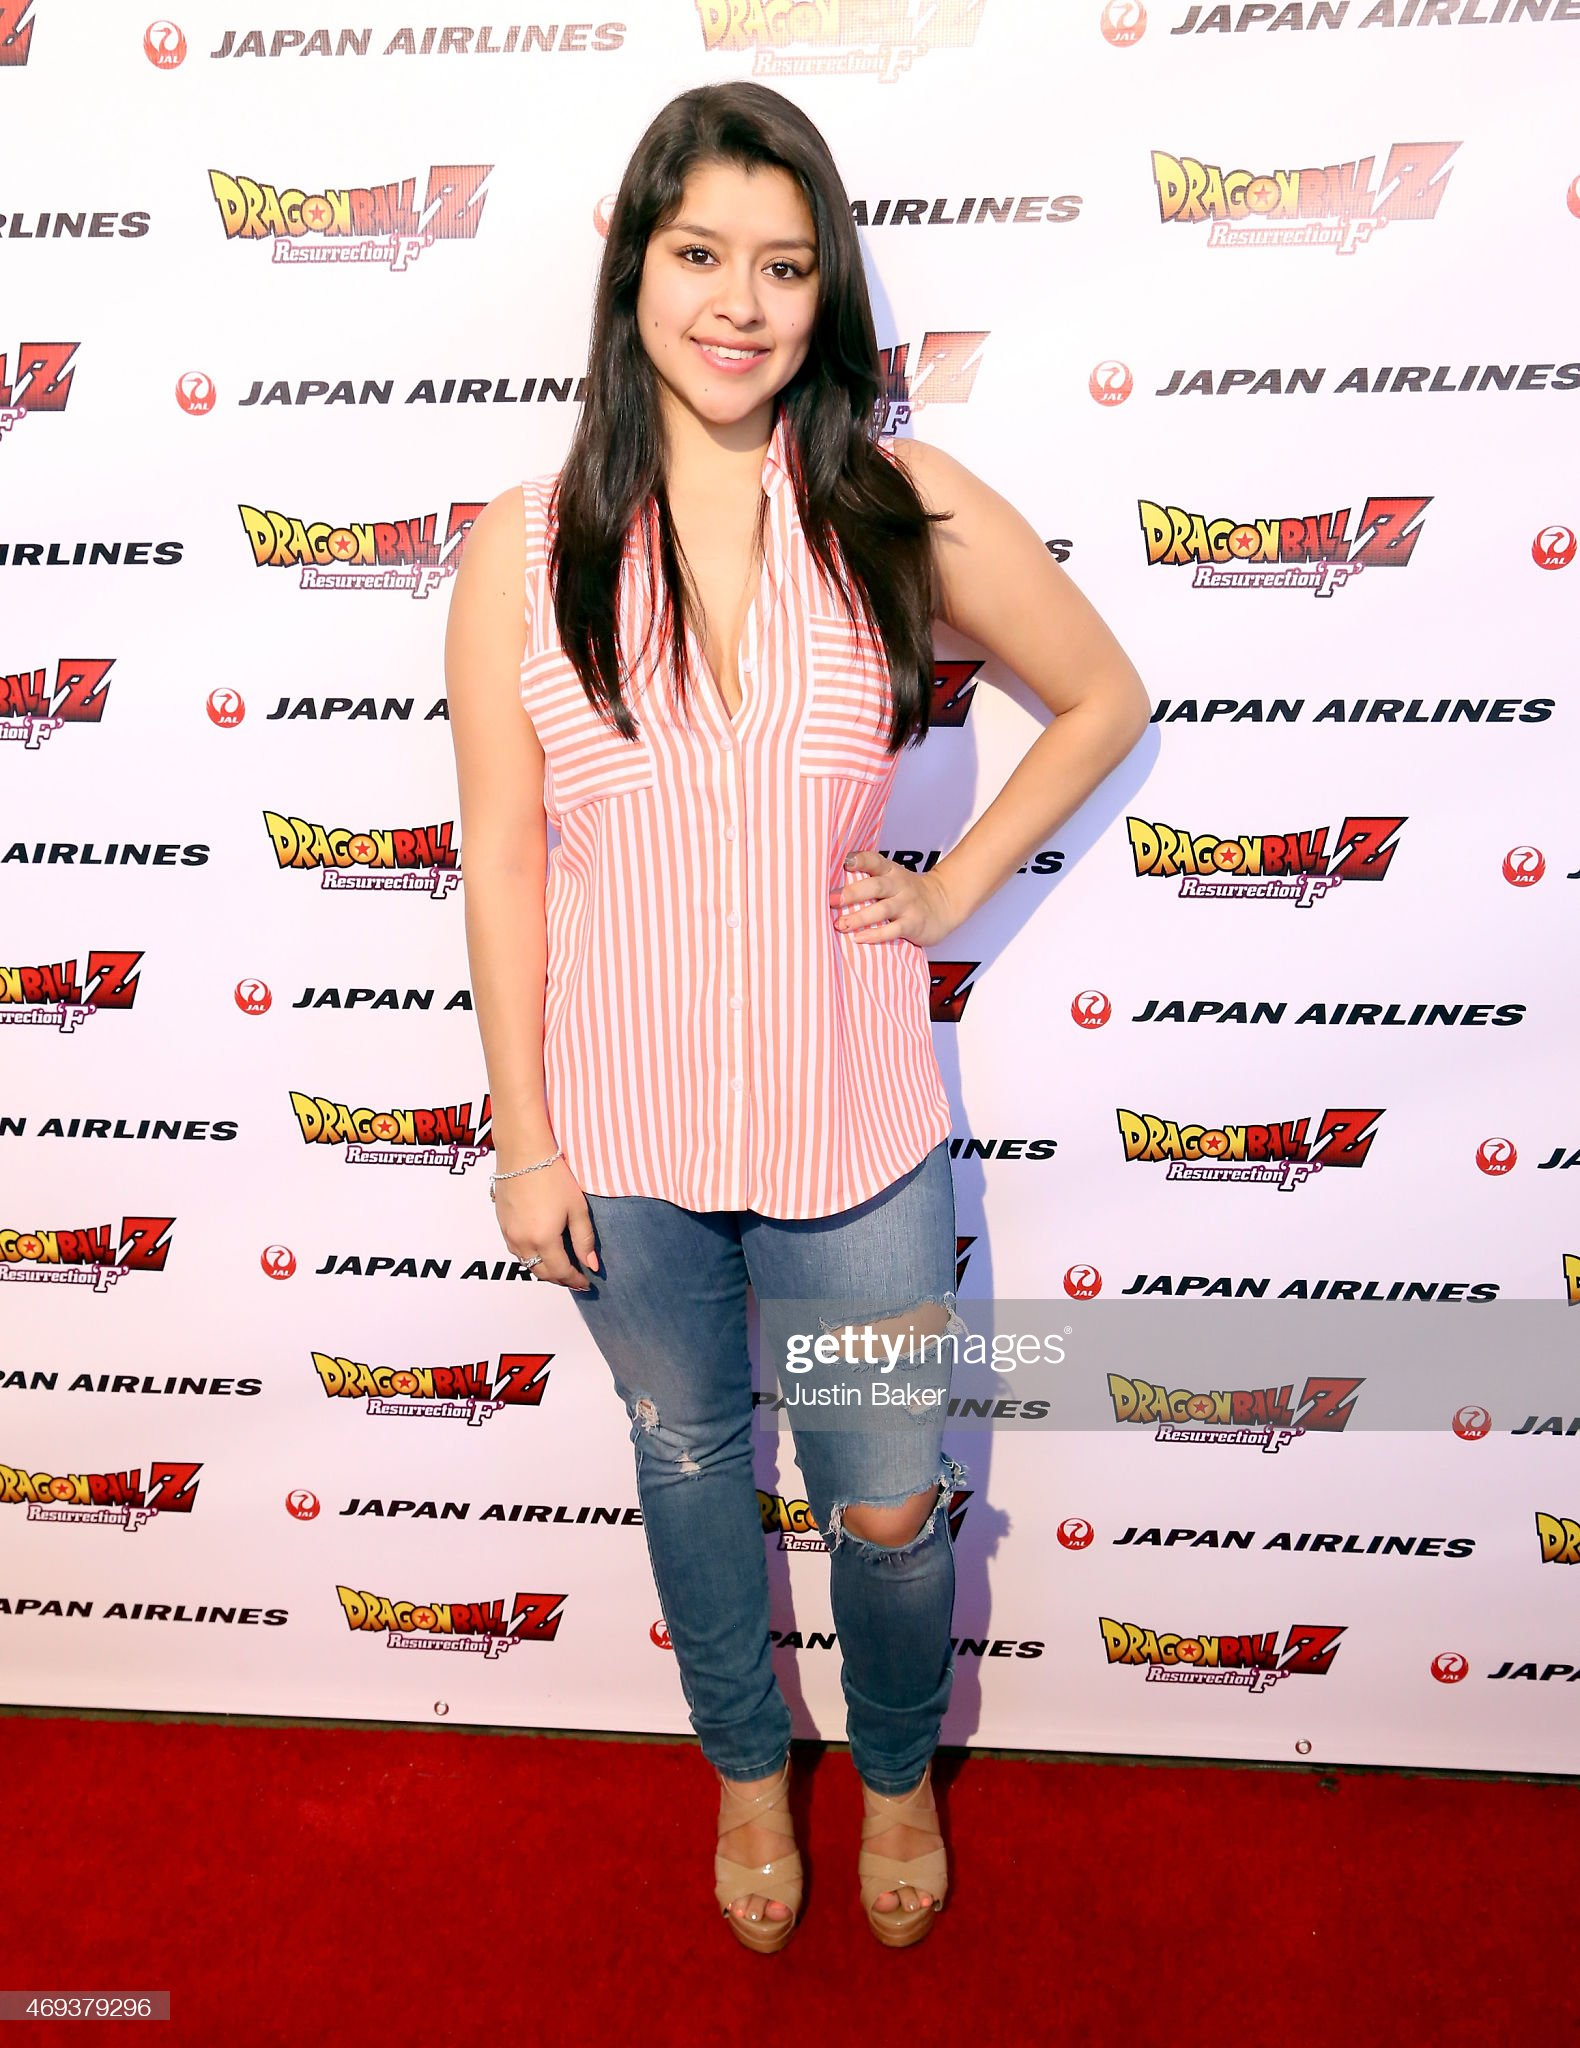 ¿Cuánto mide Chelsea Rendón? - Altura - Real height Actress-chelsea-rendon-attends-the-dragon-ball-z-resurrection-f-world-picture-id469379296?s=2048x2048